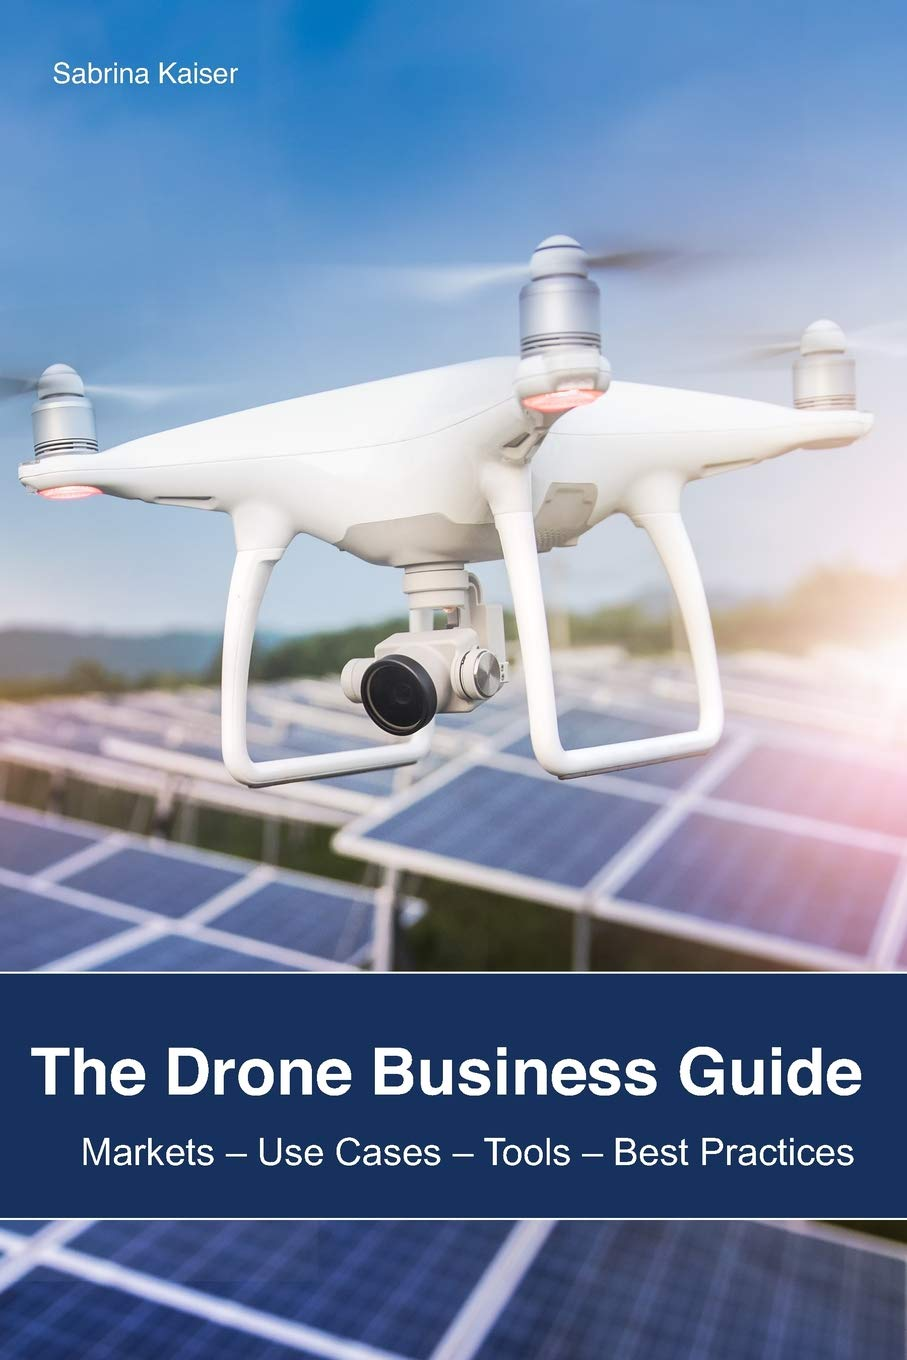 The Drone Business Guide: Markets - Use Cases - Tools - Best